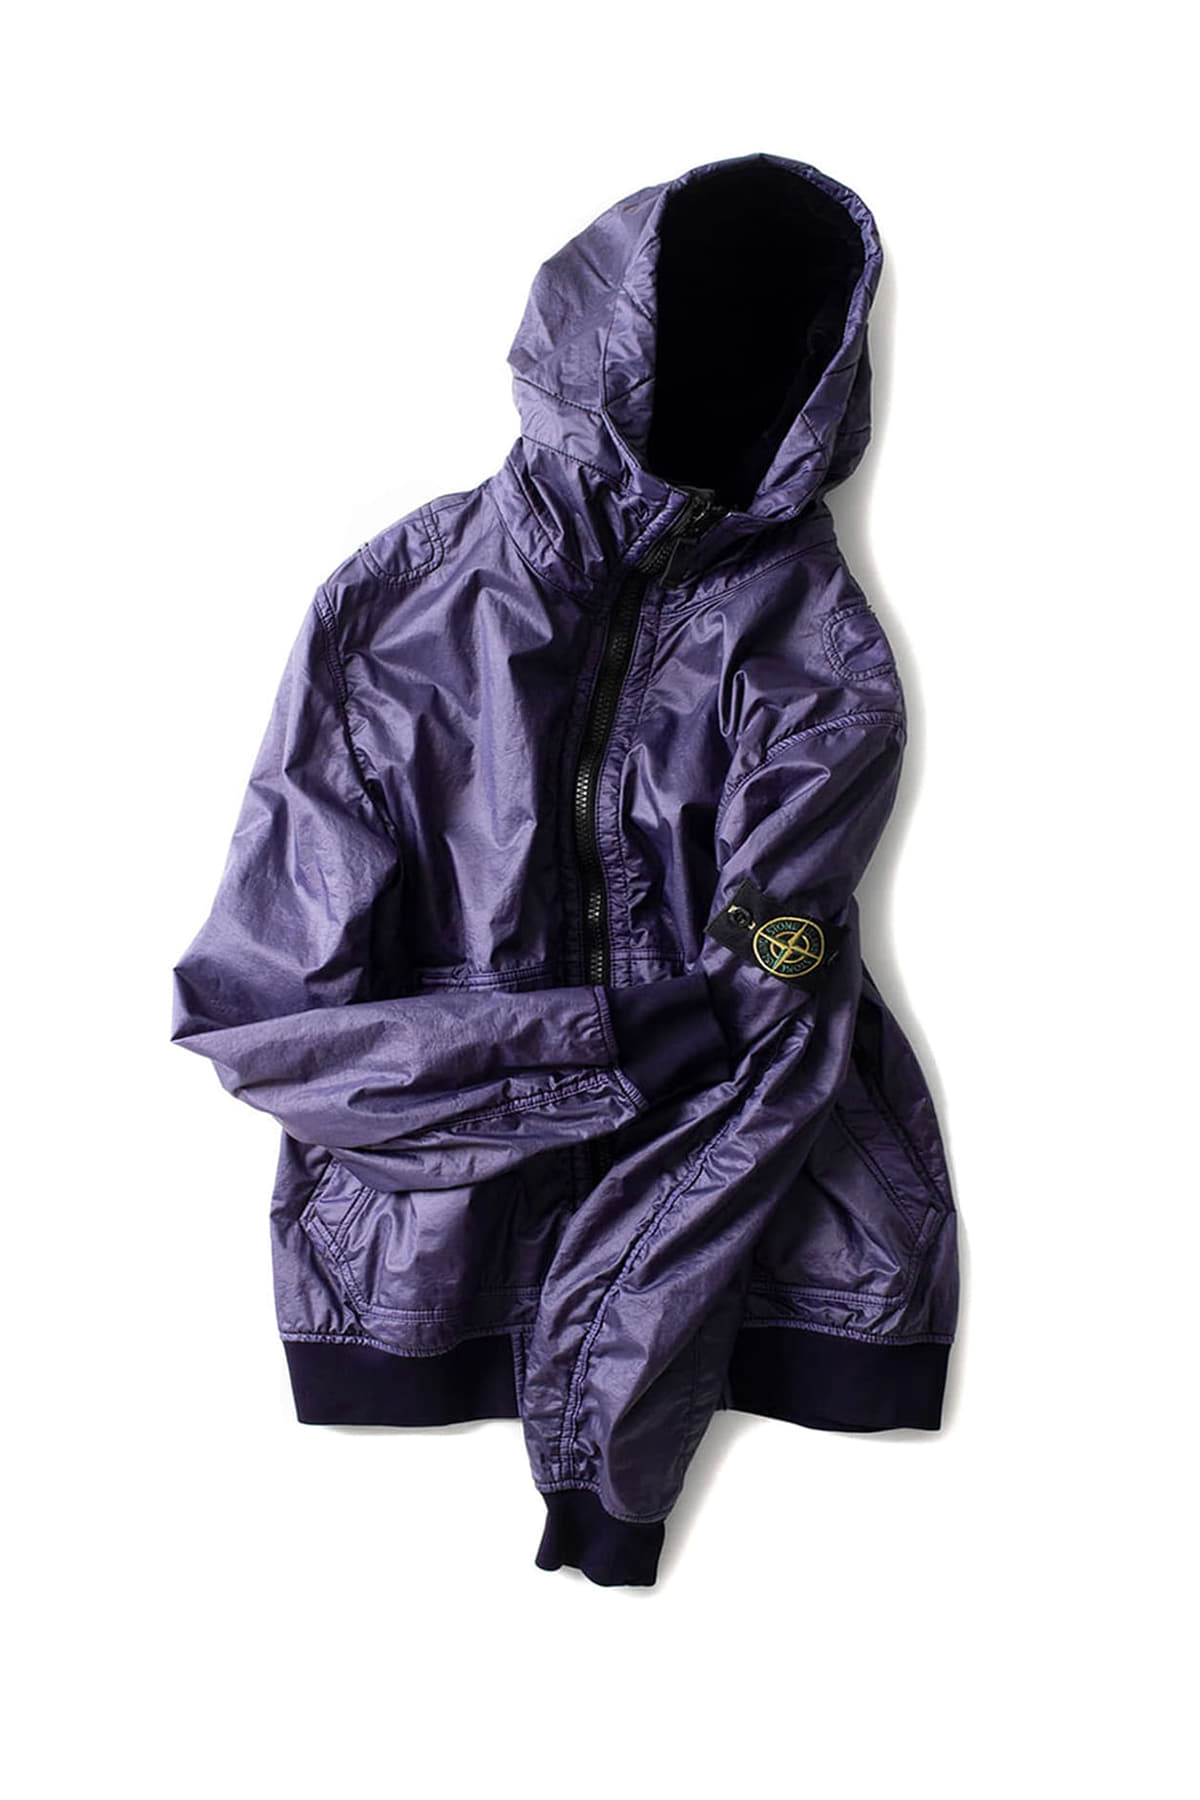 Stone Island : Lamy Flock Jacket (Navy Blue)